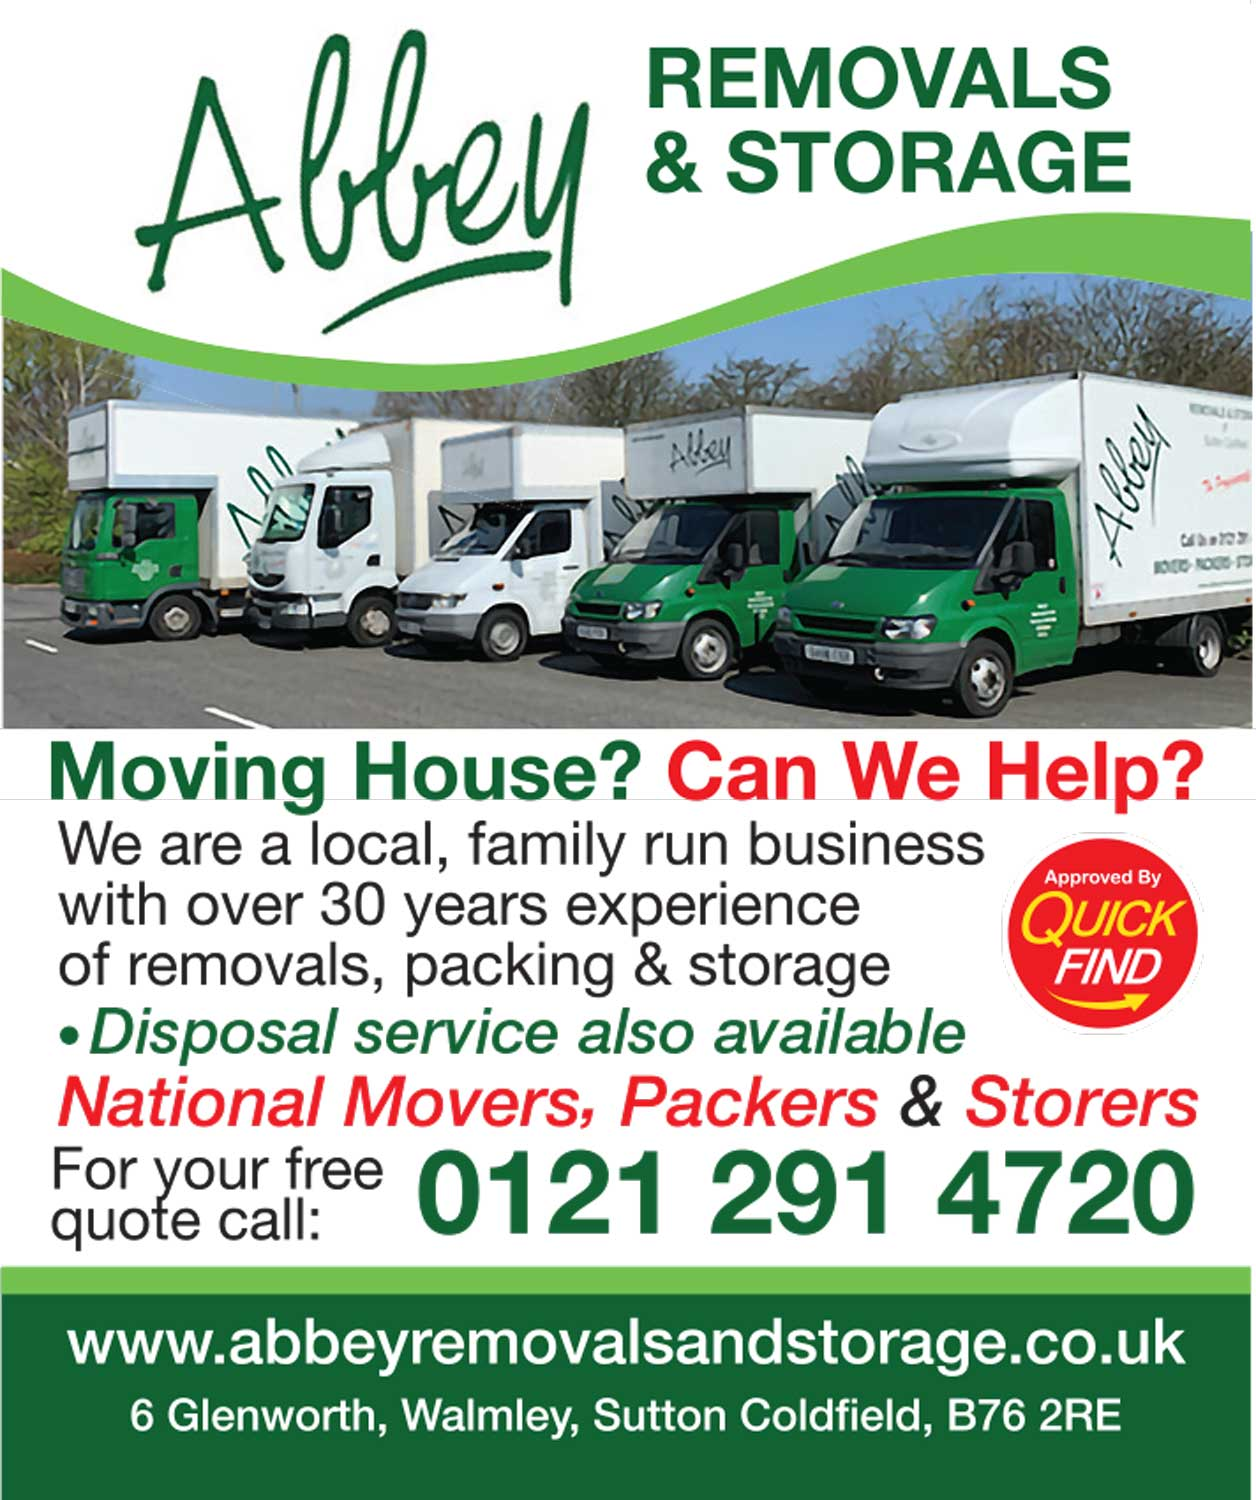 Abbey Removals & Storage